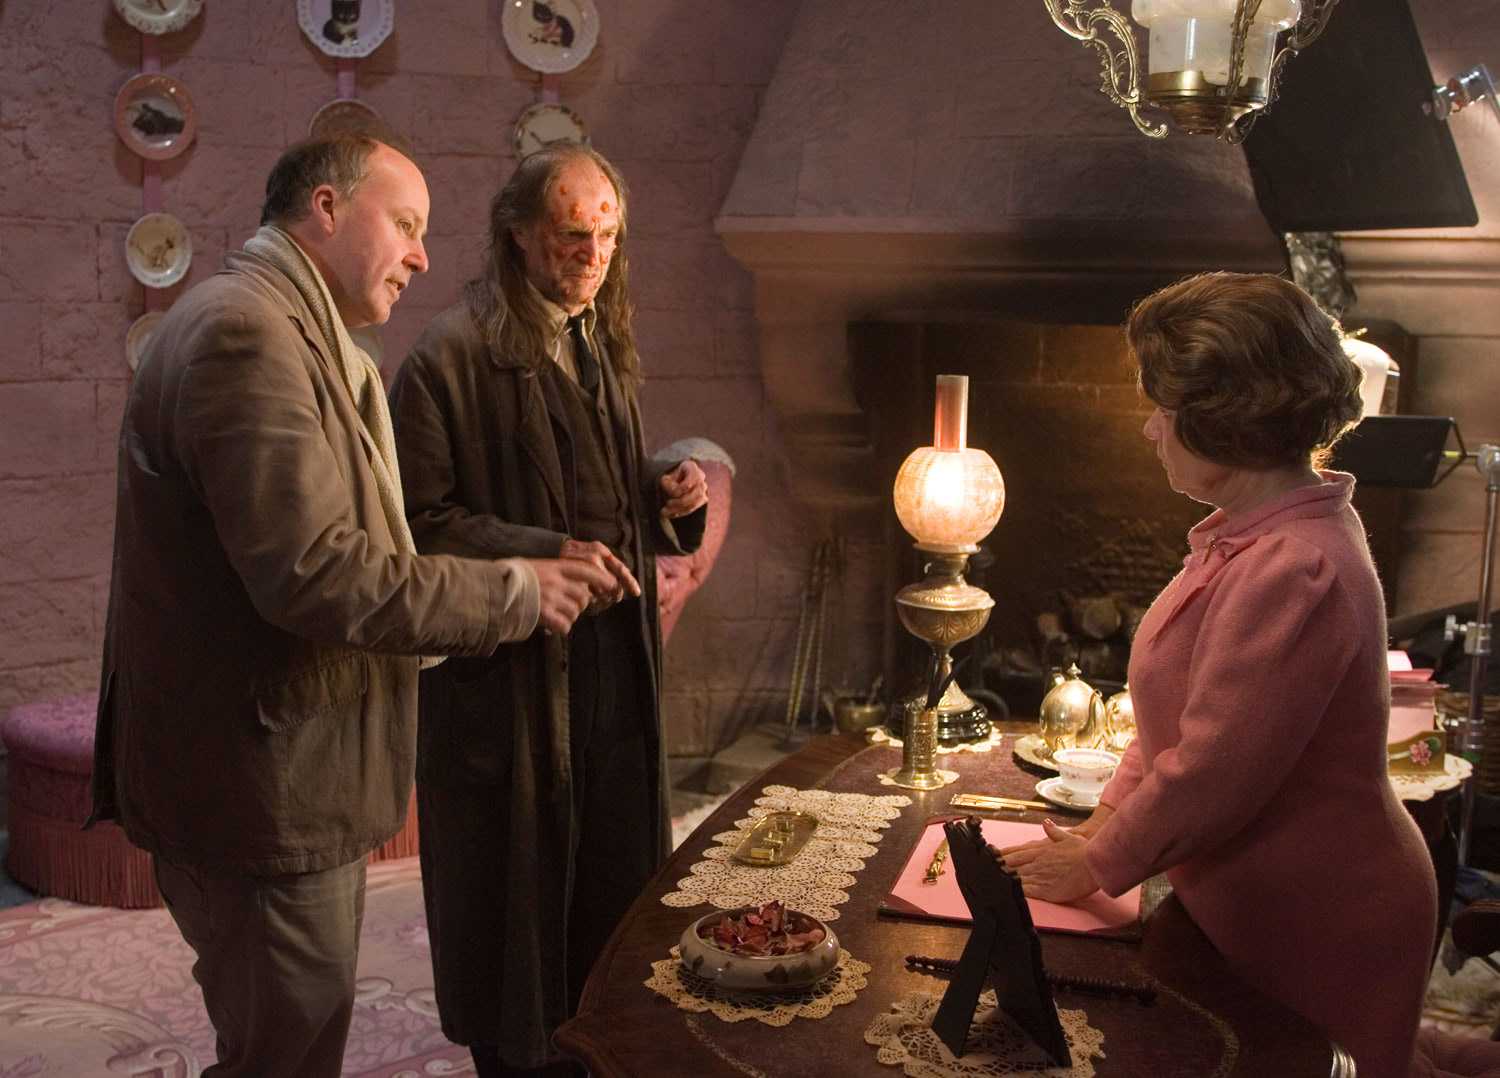 David Yates, David Bradley and Imelda Staunton